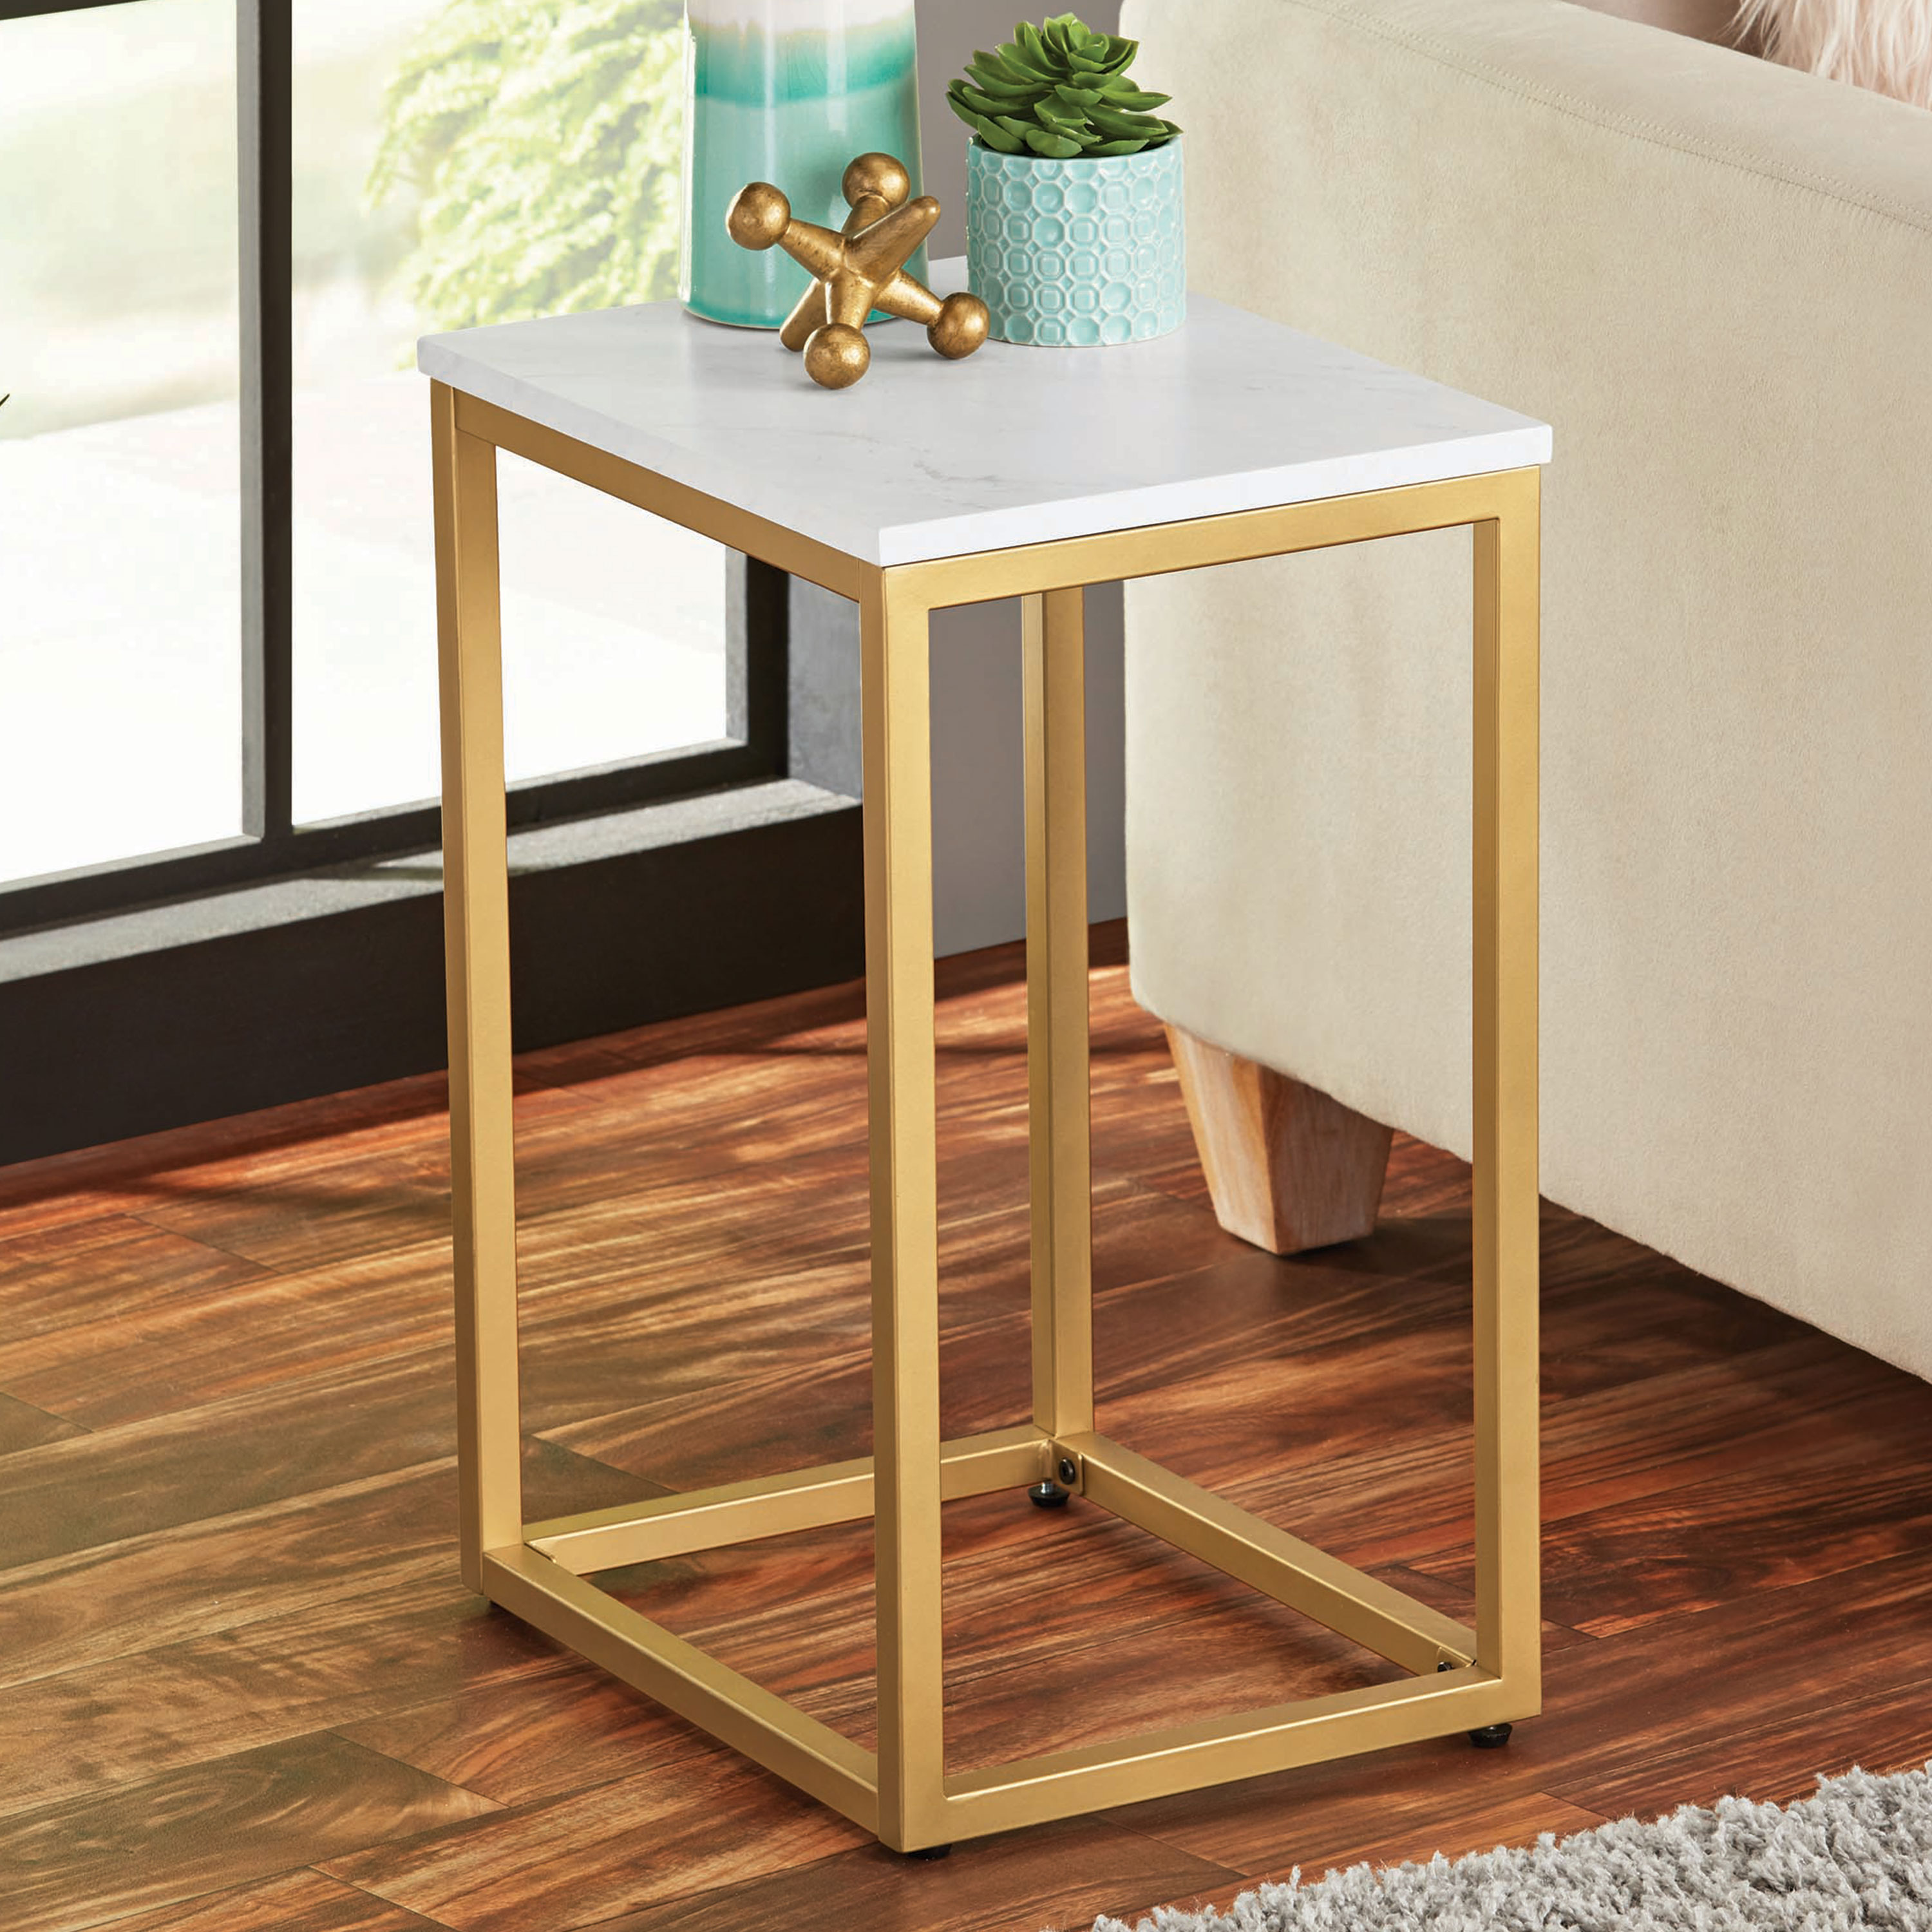 mainstays end table multiple finishes black oak finish assembly instructions magnolia market website laminate tops home furniture line thomasville and chairs homesense christmas